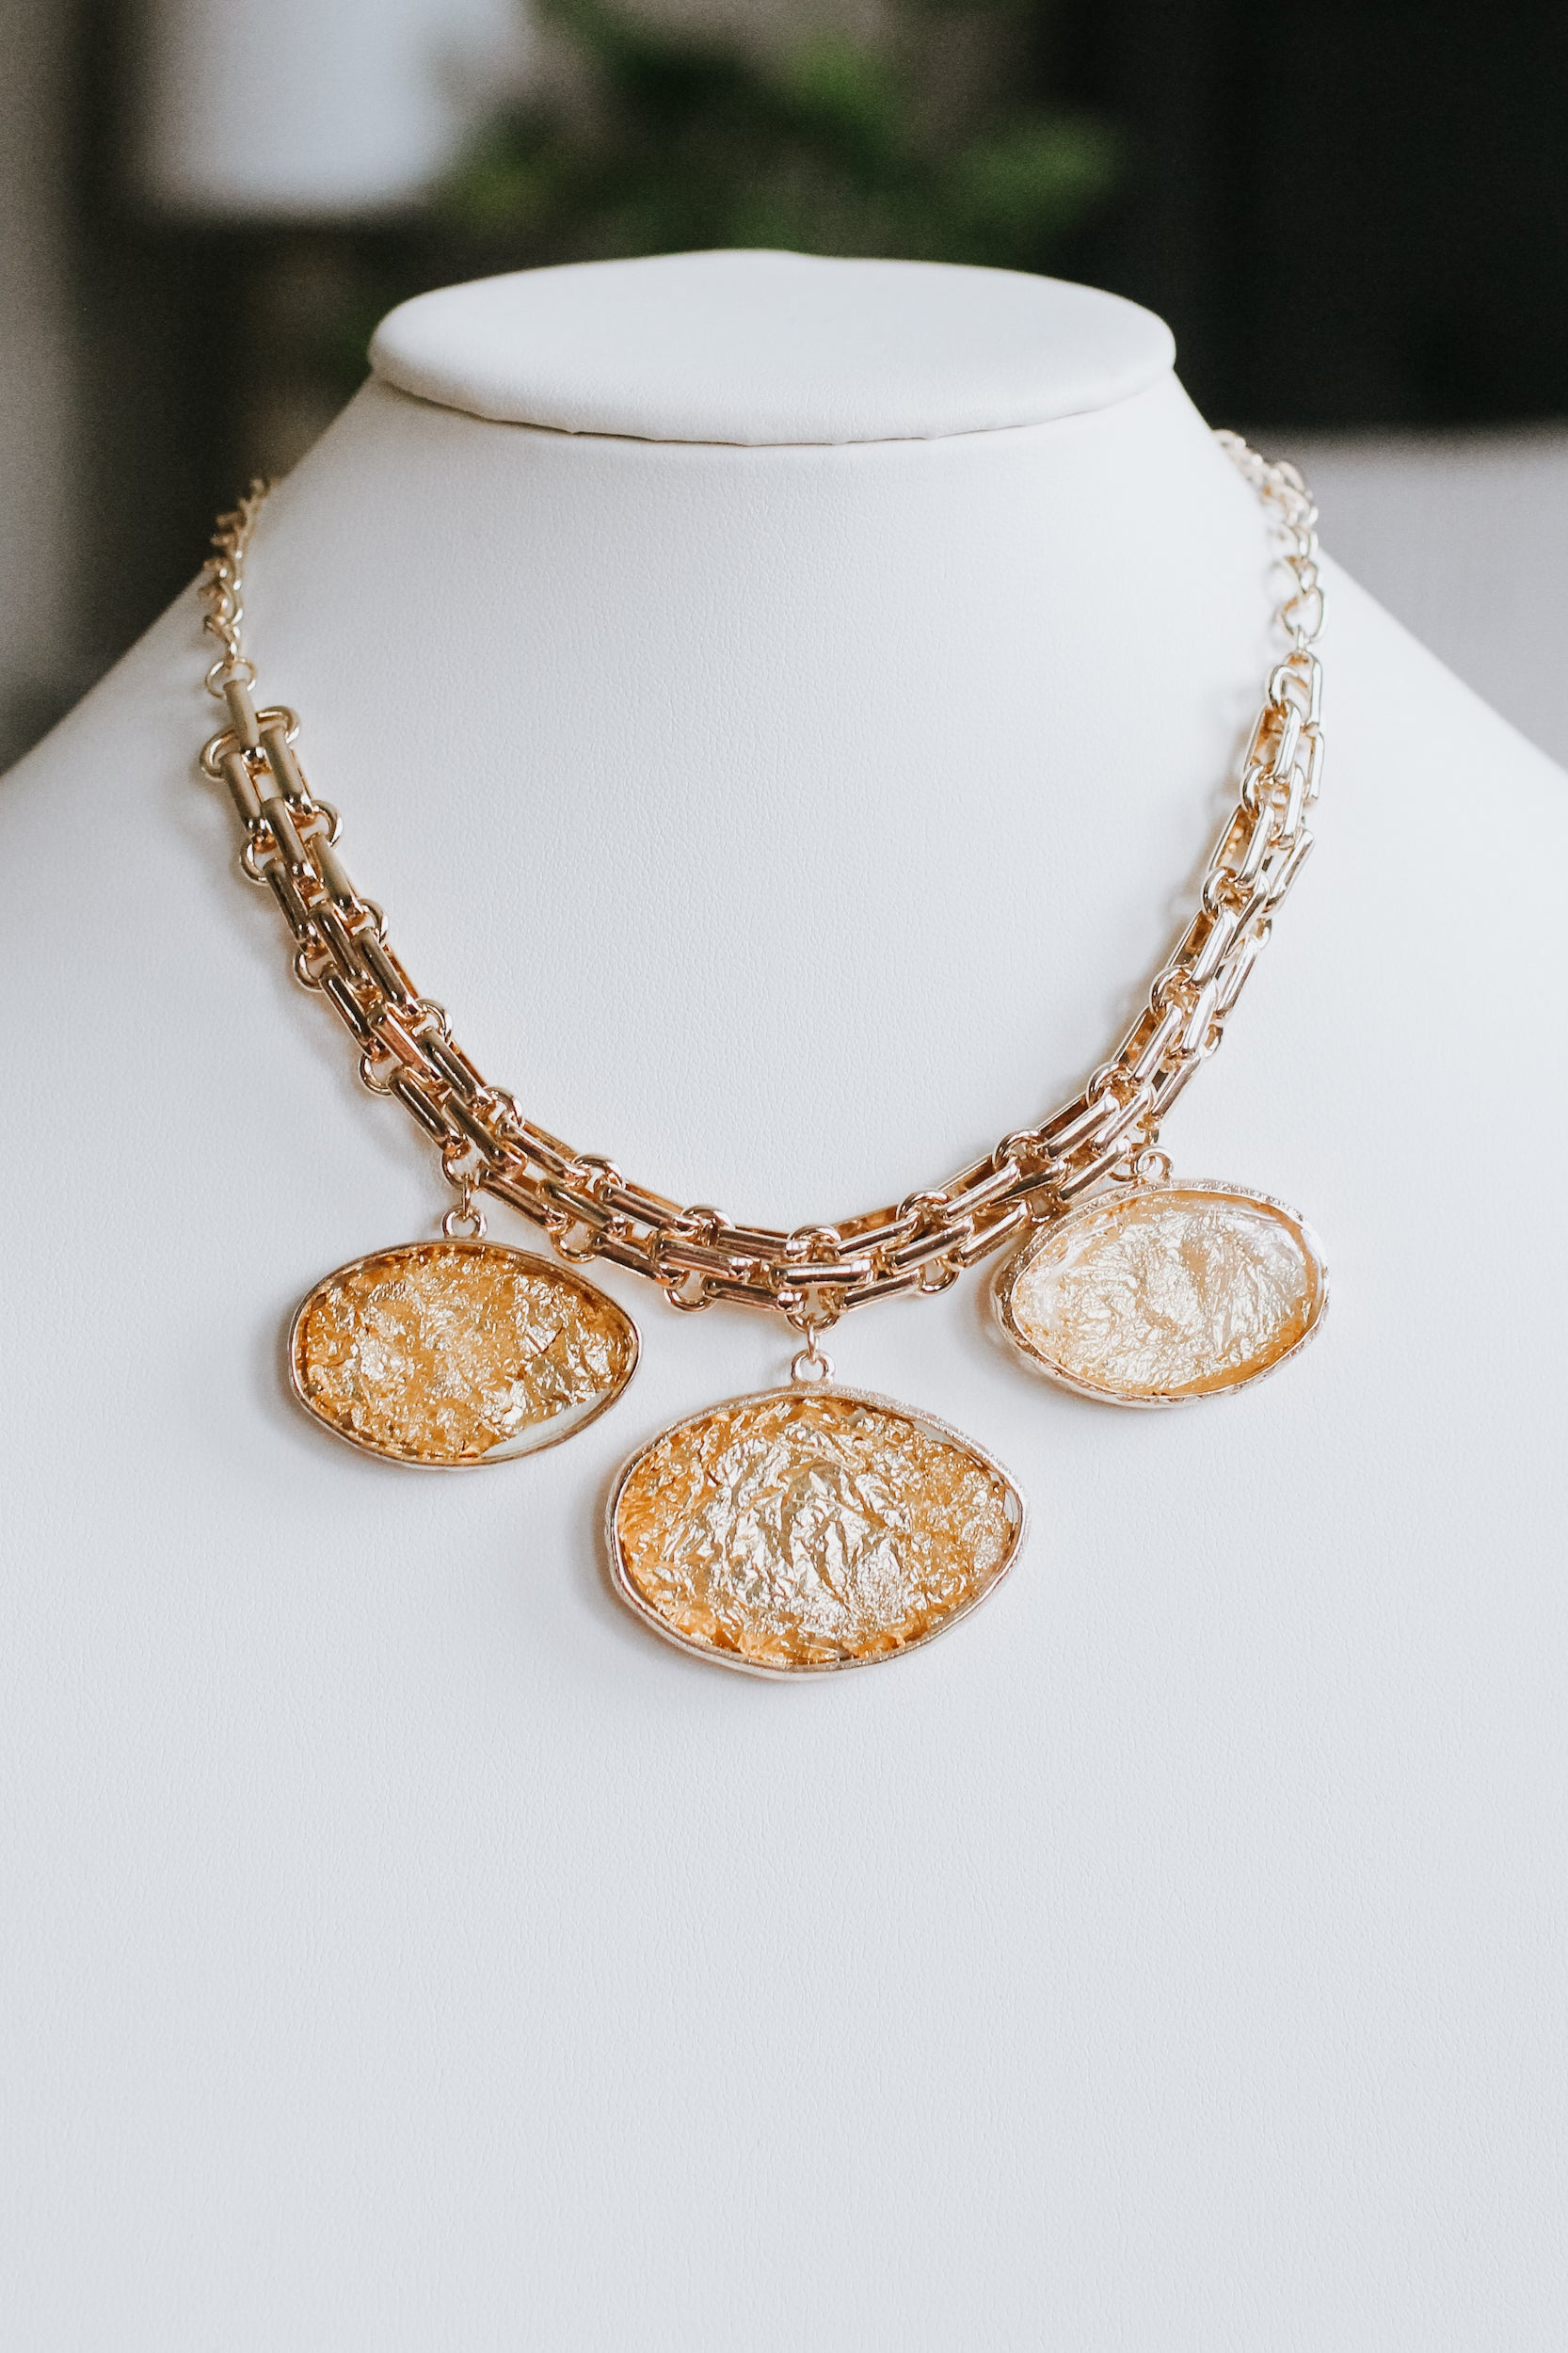 Oval Gold Bead Layered Necklace